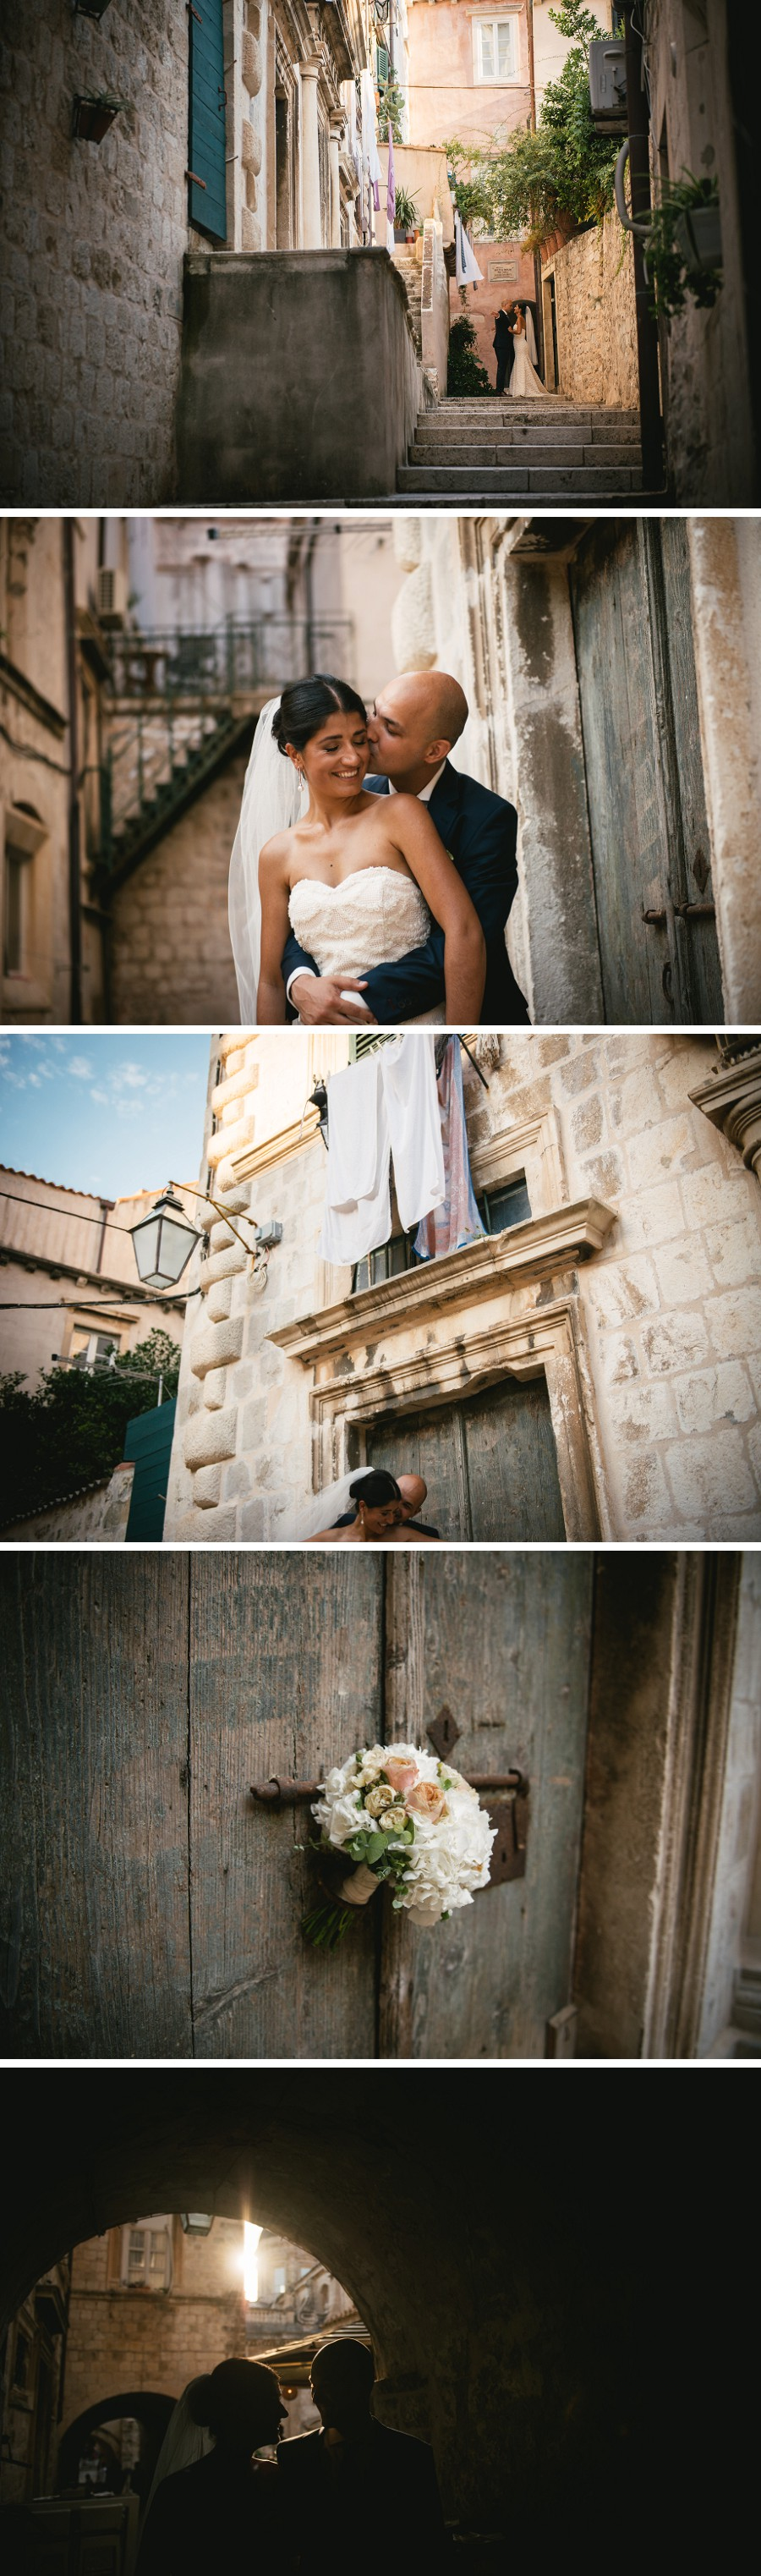 Bride and groom photography in the streets of Dubrovnik